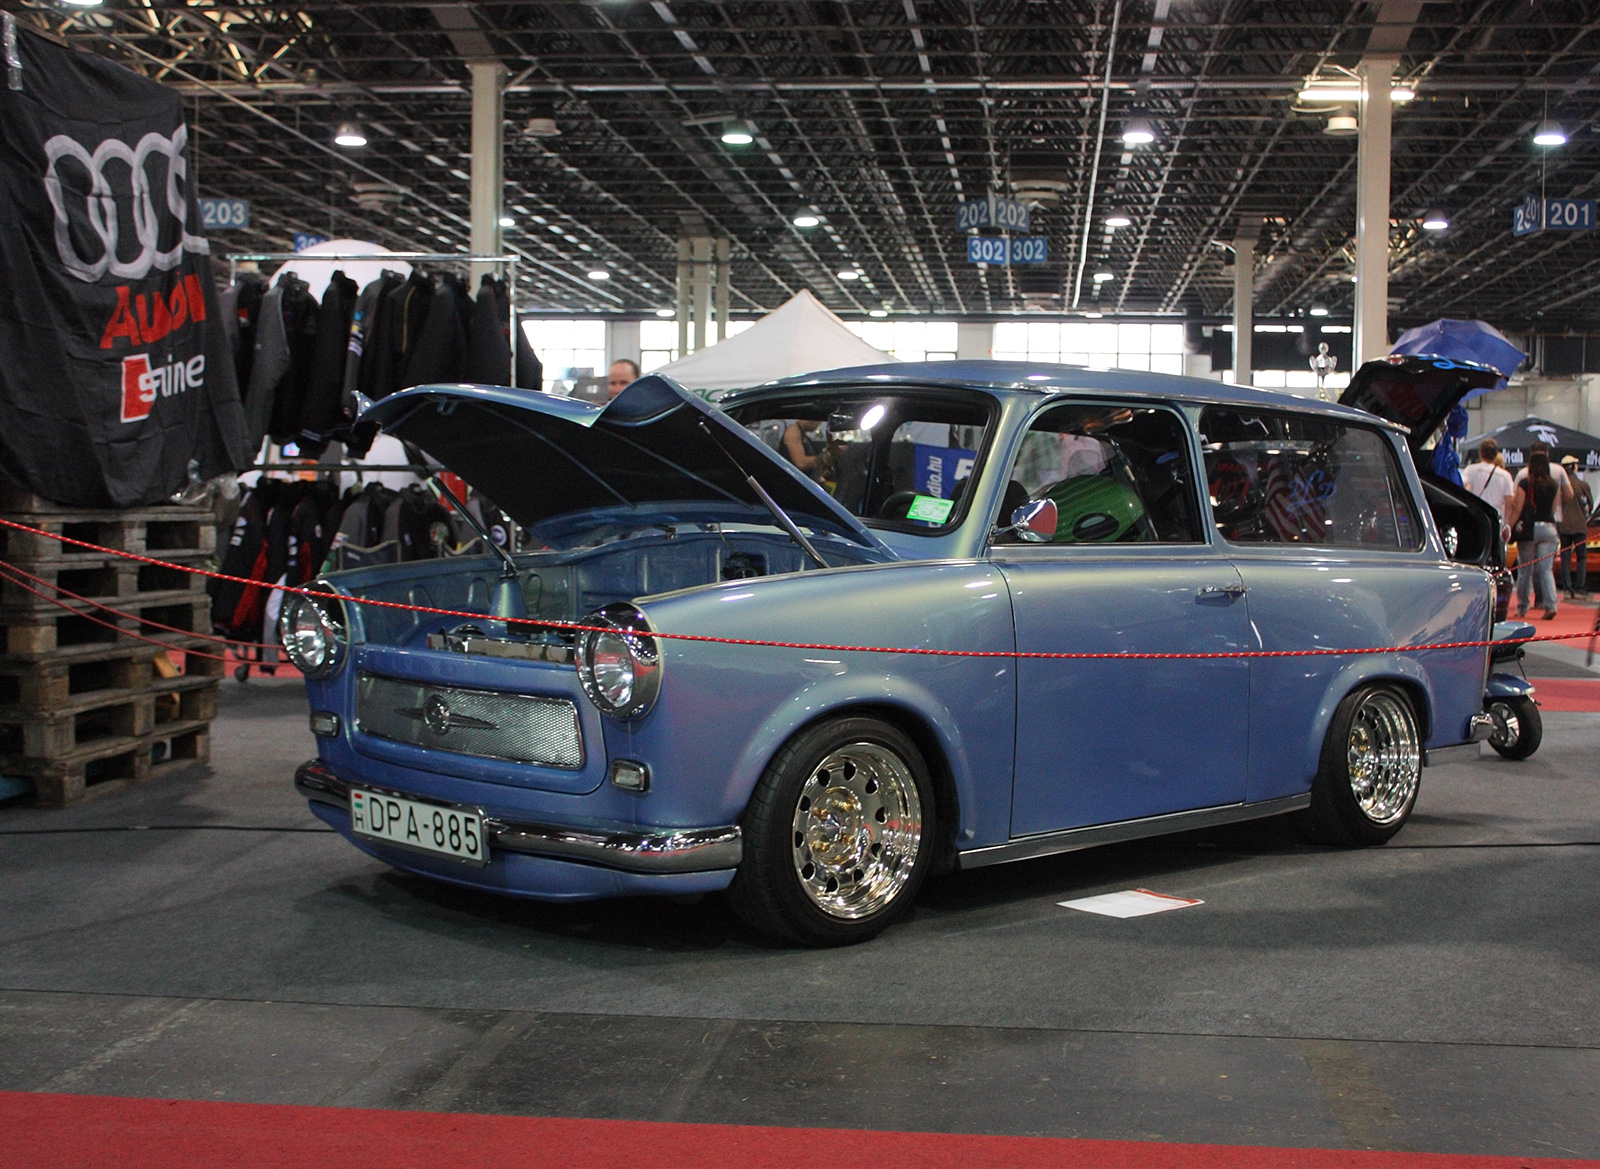 file tuned trabant 601 universal during the tuning show. Black Bedroom Furniture Sets. Home Design Ideas